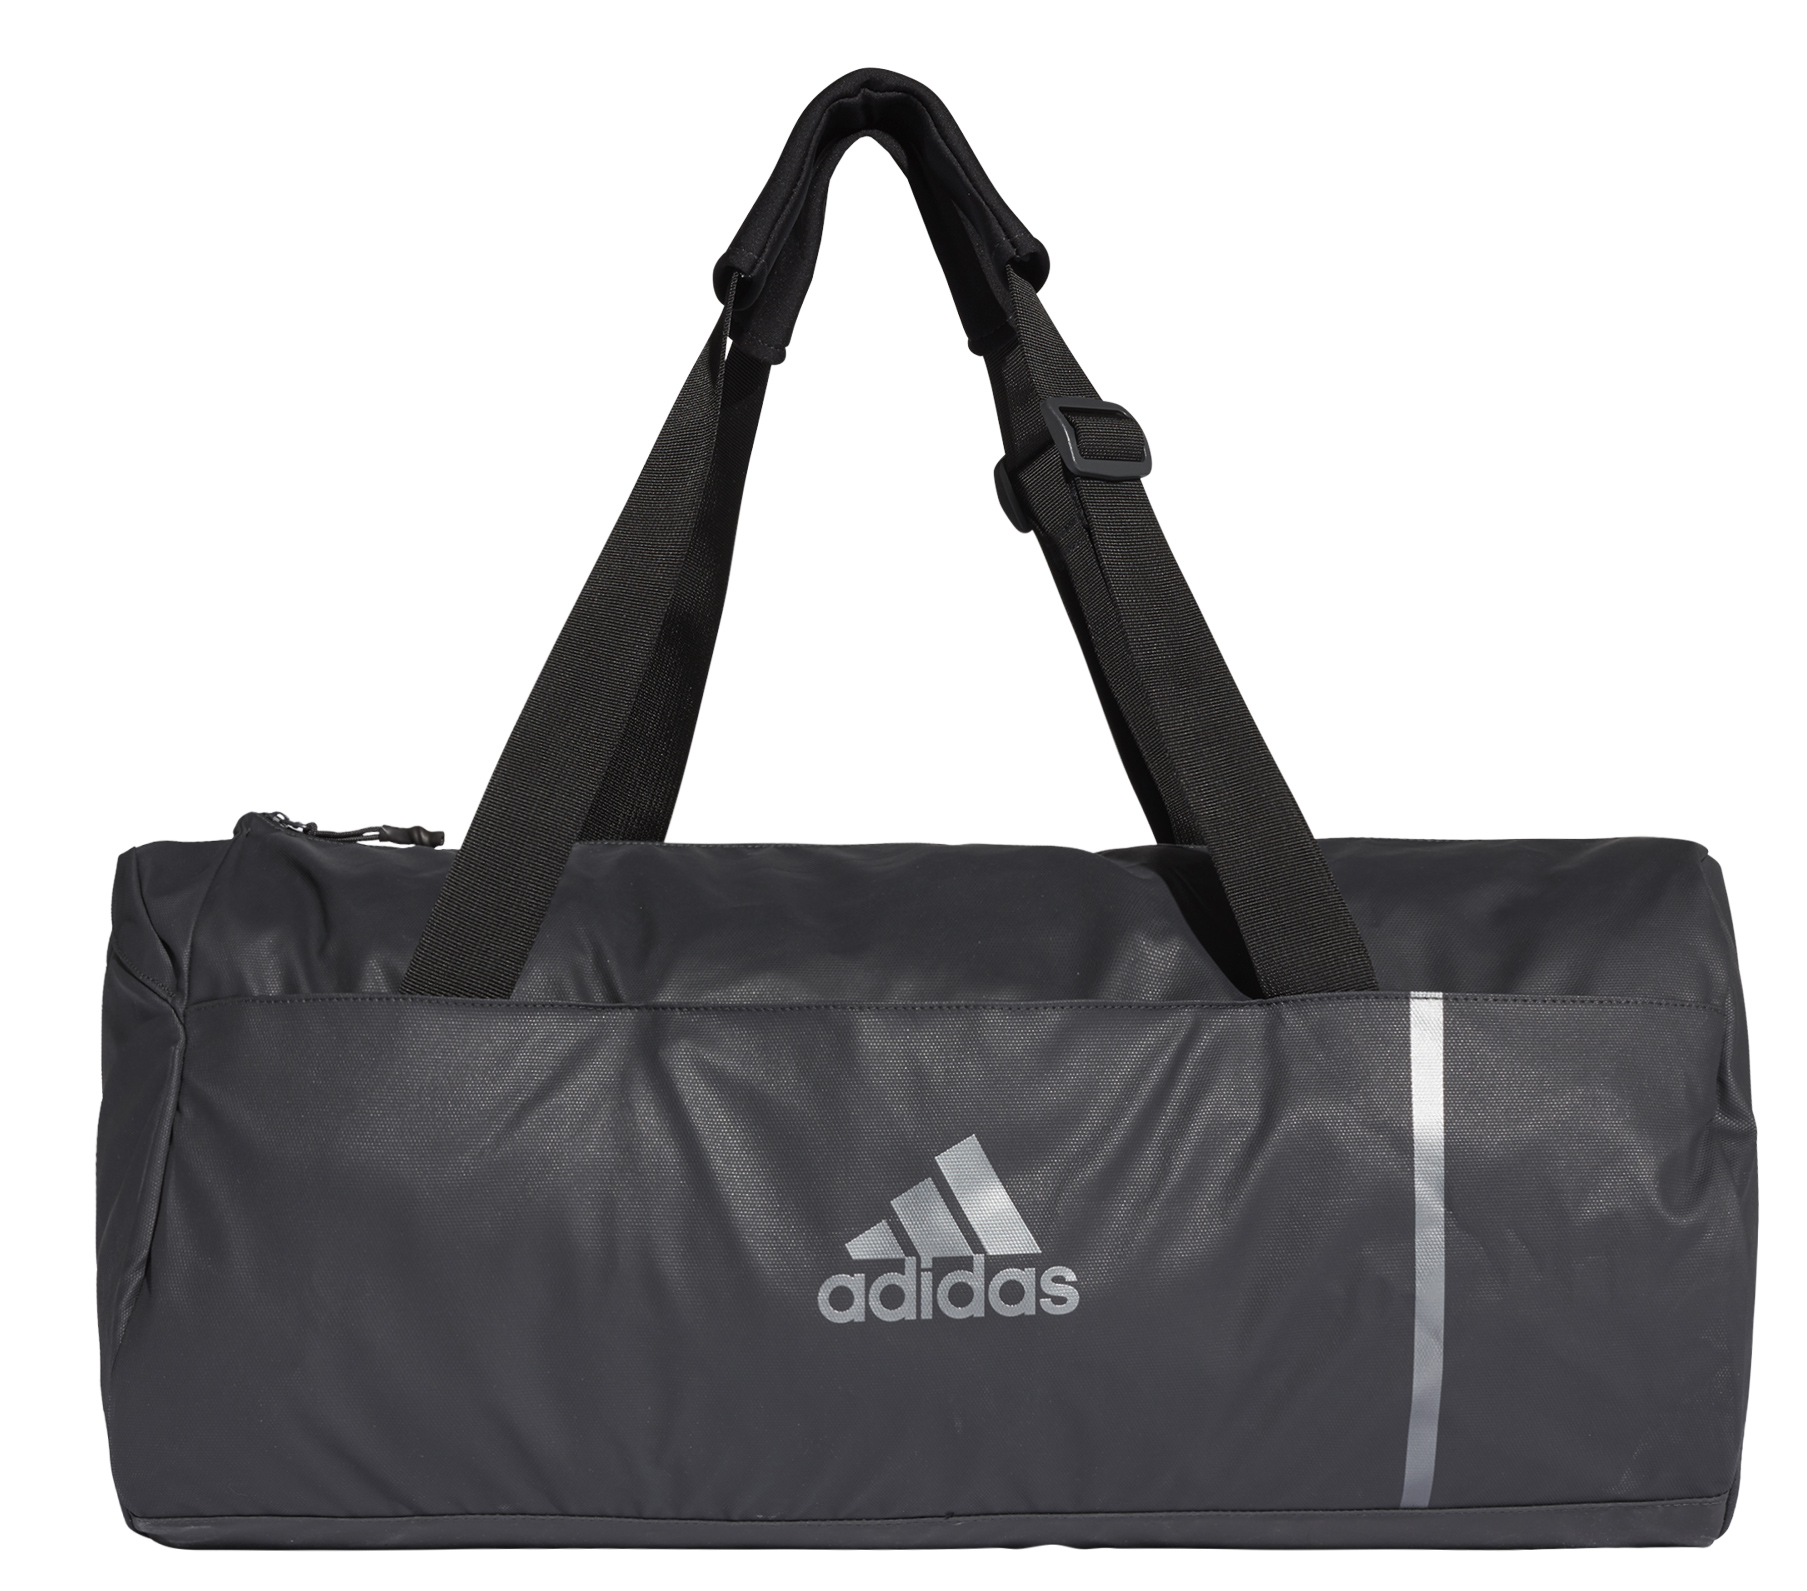 adidas-convertible-training-duffelbag-m-tasche-farbe-carbon-night-metallic-night-metallic-